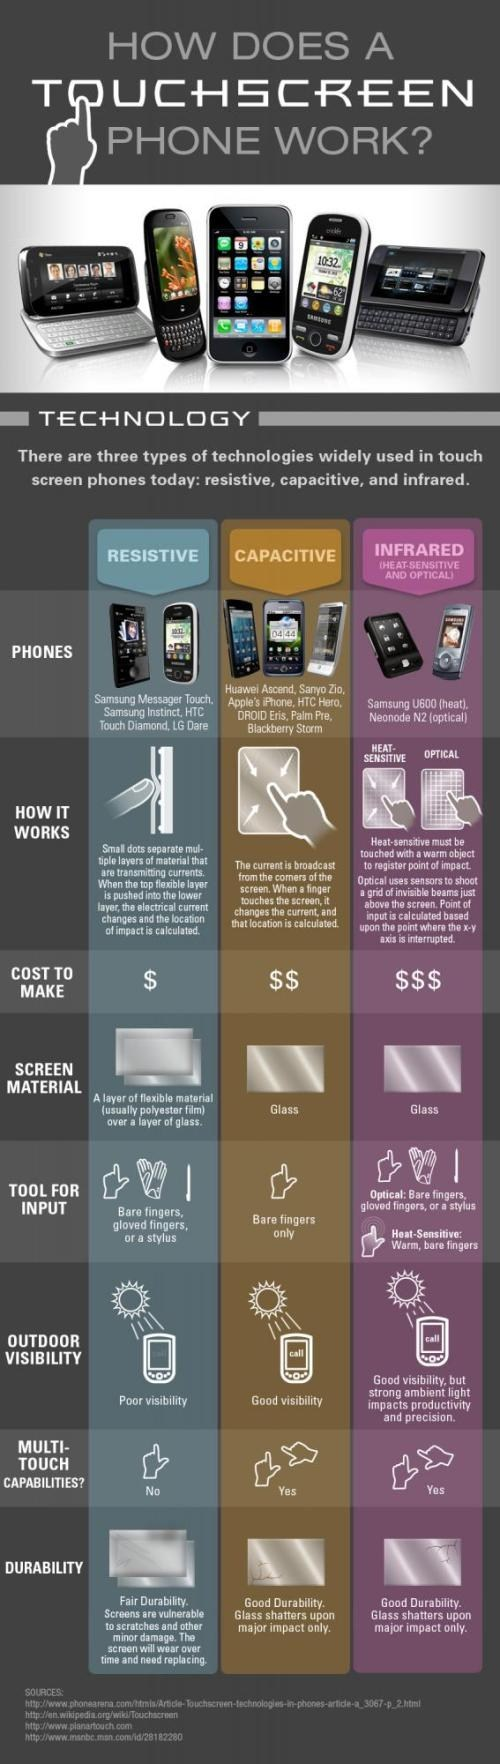 infographic smart phones technology touchscreens - 6612986112